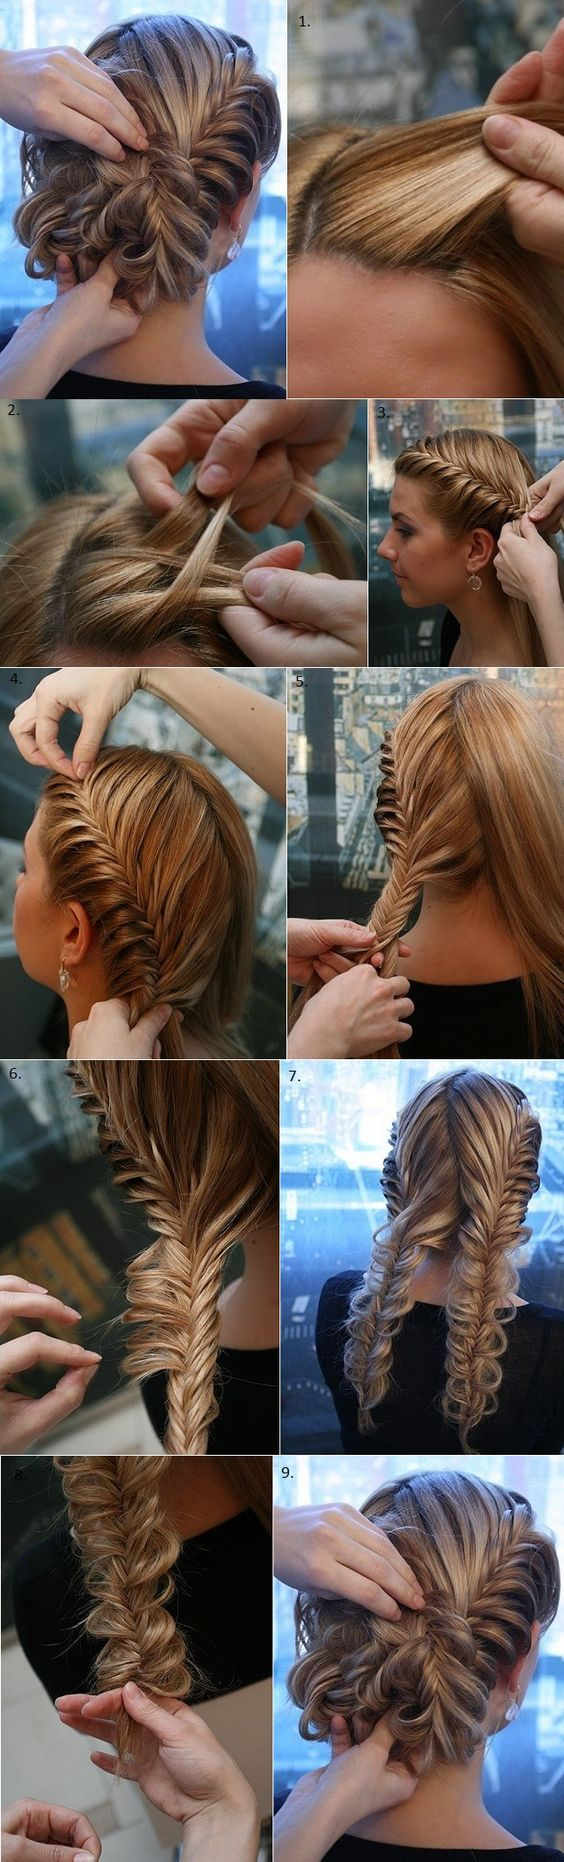 best images about backtoschoolhairstyles on pinterest